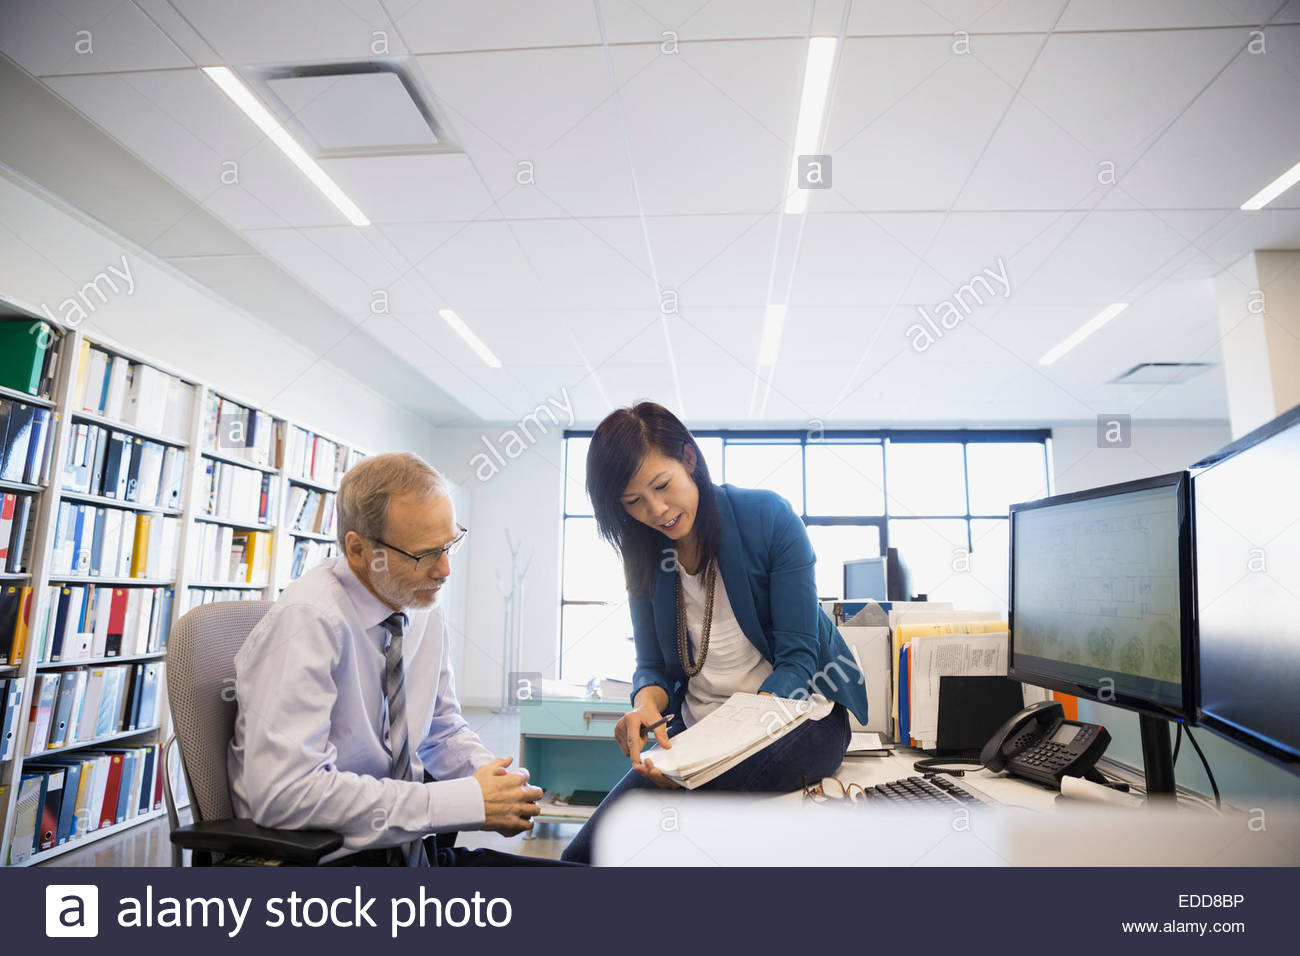 Business people discussing paperwork at desk in office - Stock Image